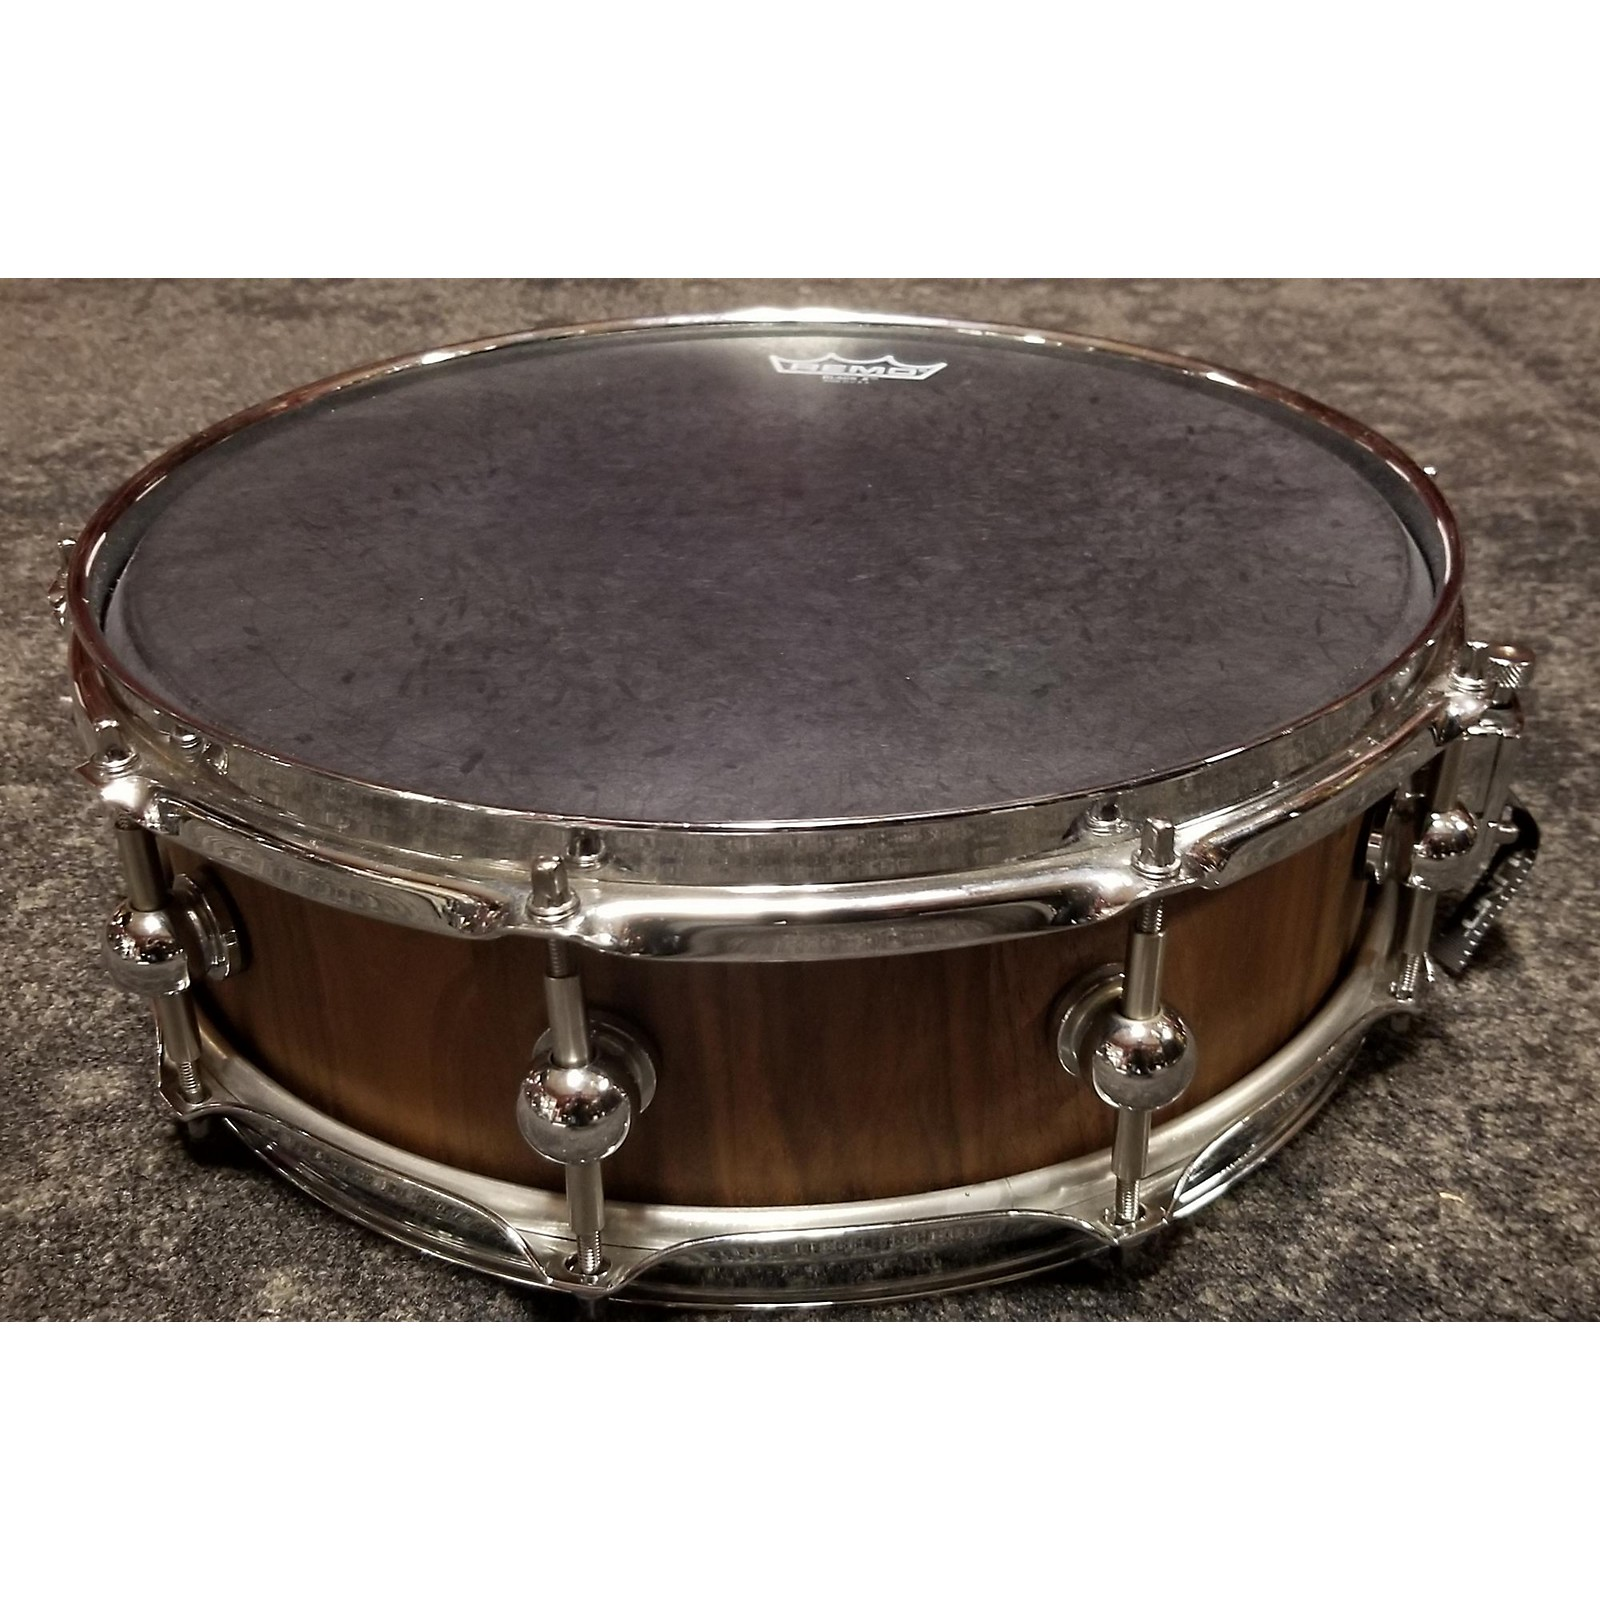 In Store Used Used Socal Drums 5X14 Bubinga Stave Snare Drum Natural